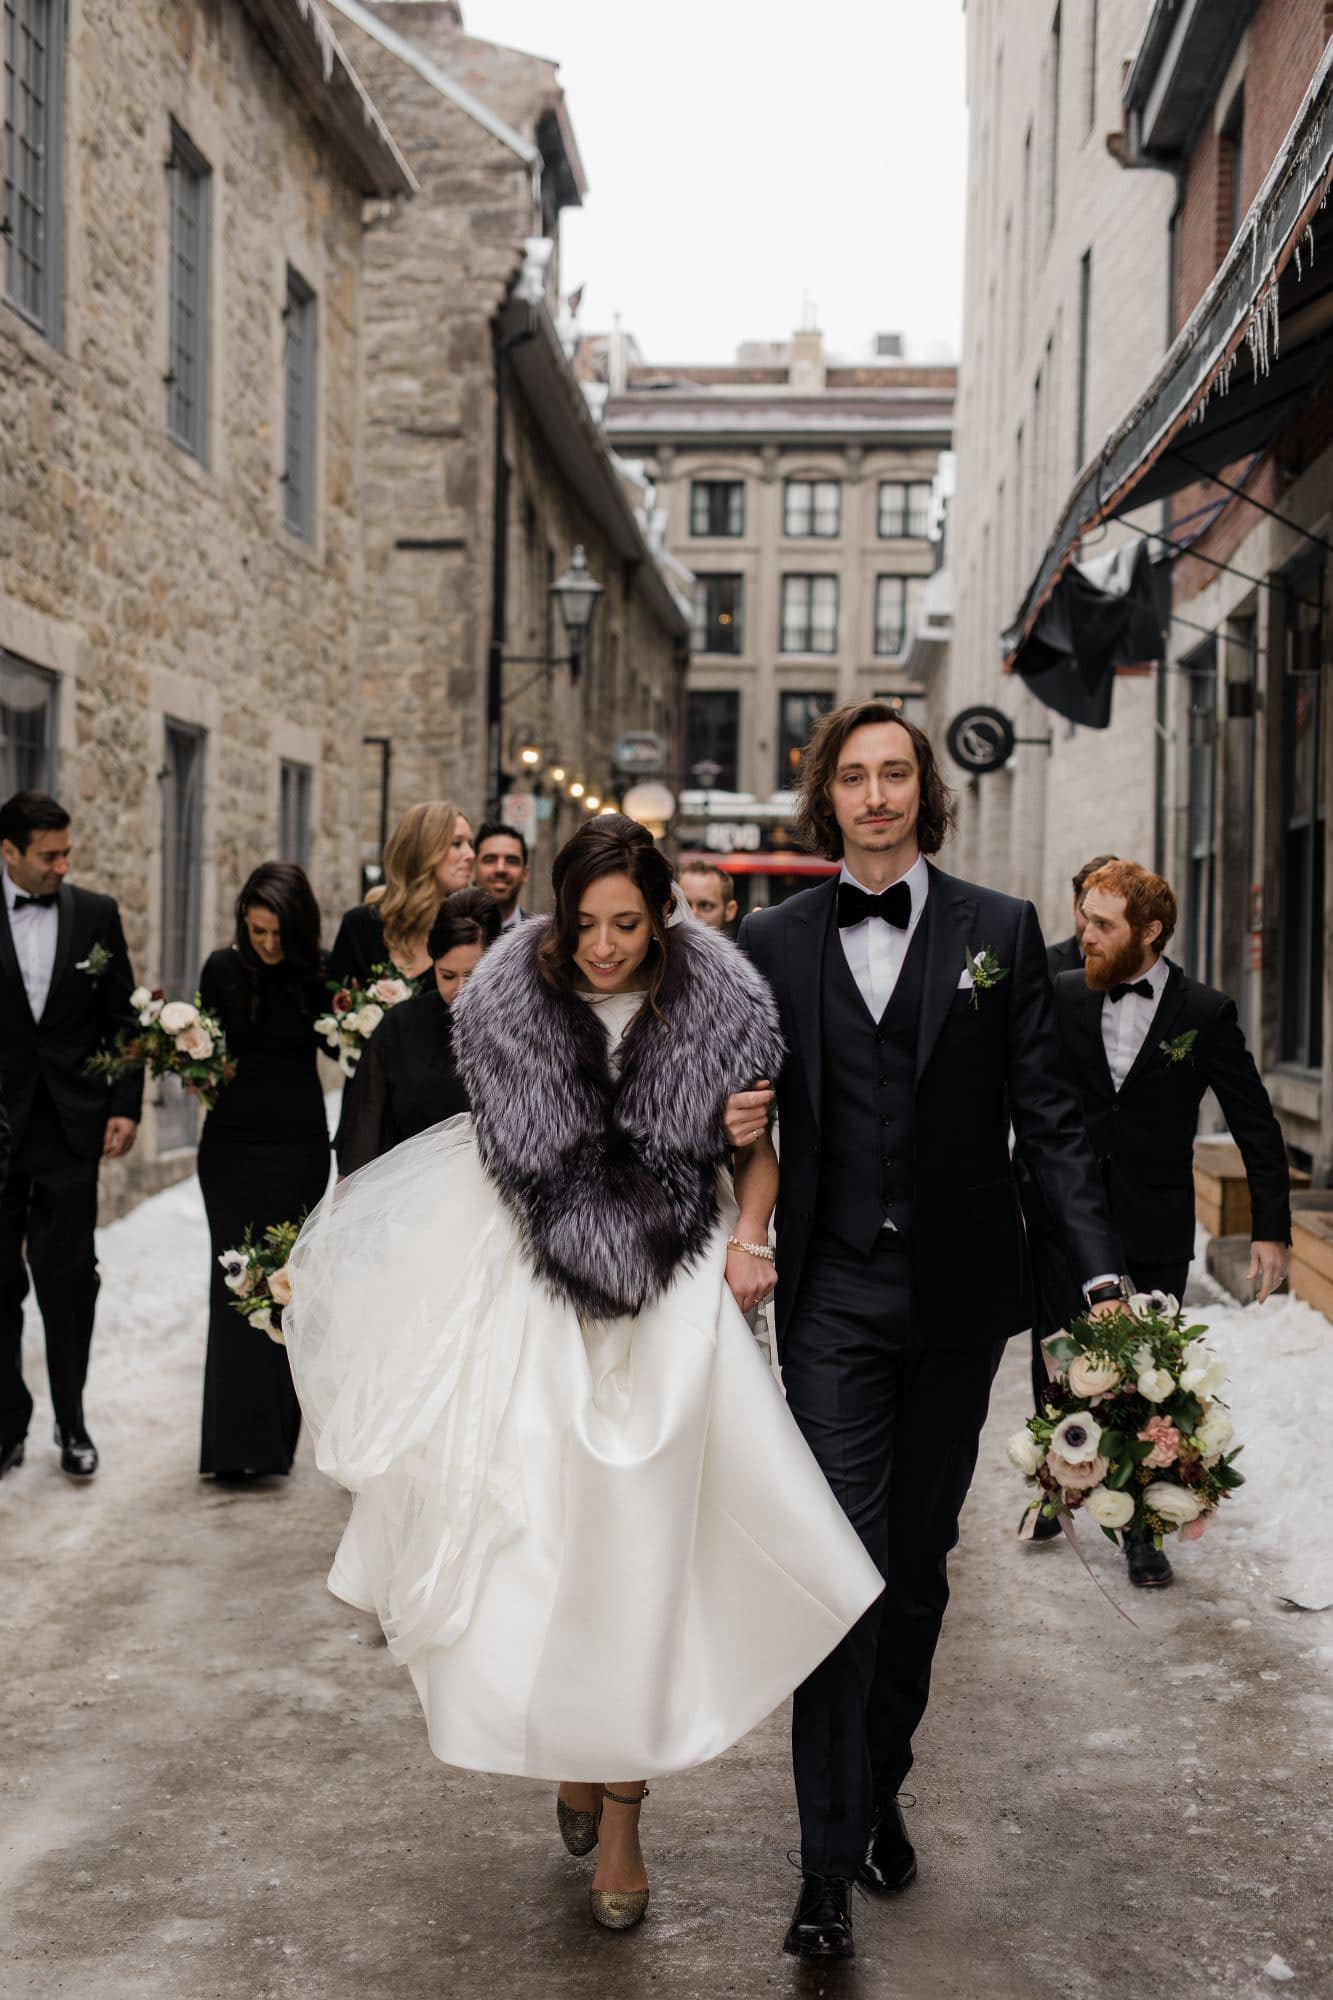 A bride and groom walk on ice outside of the william grey hotel in old montreal